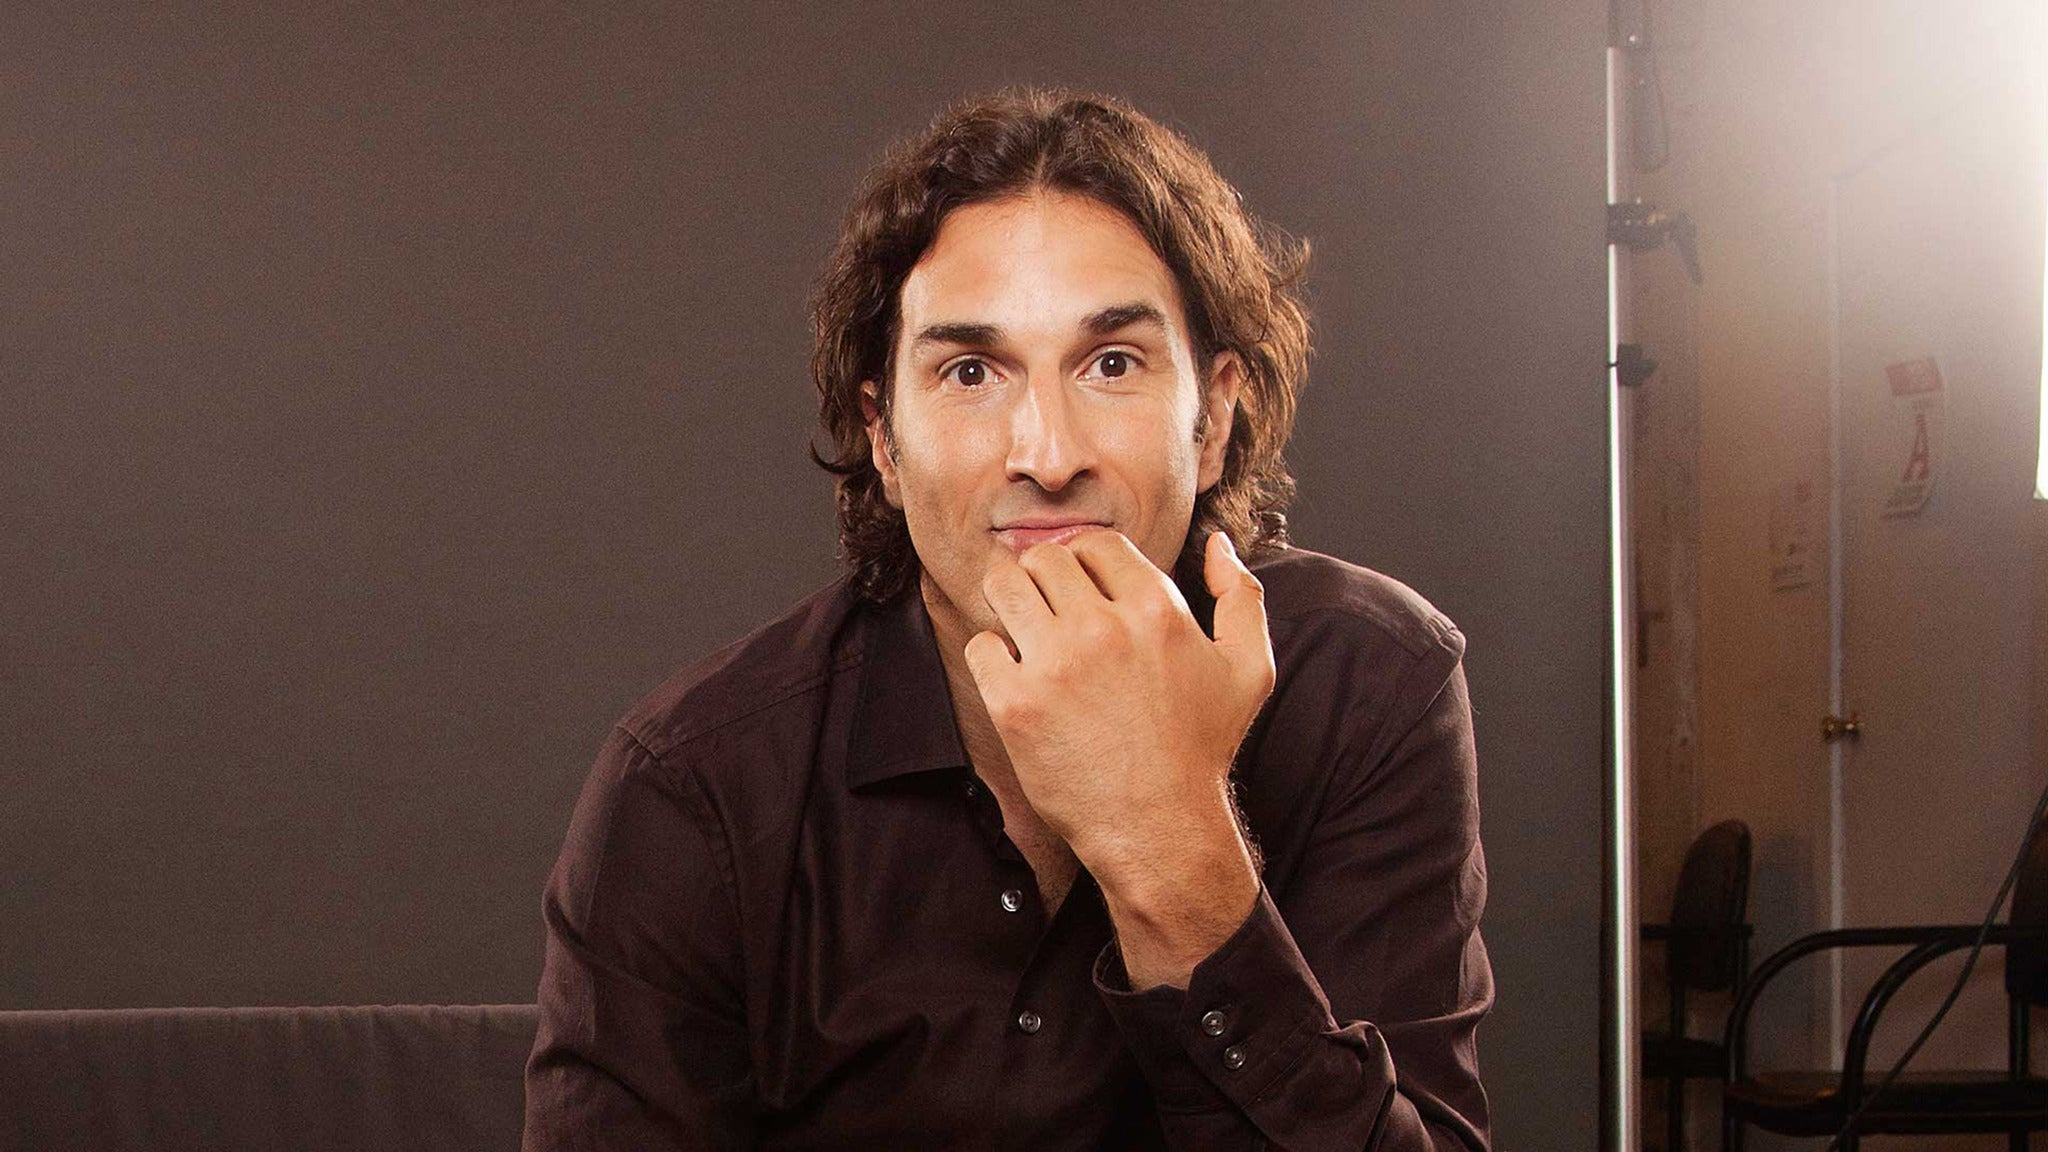 Gary Gulman at Wilma Theatre-MT